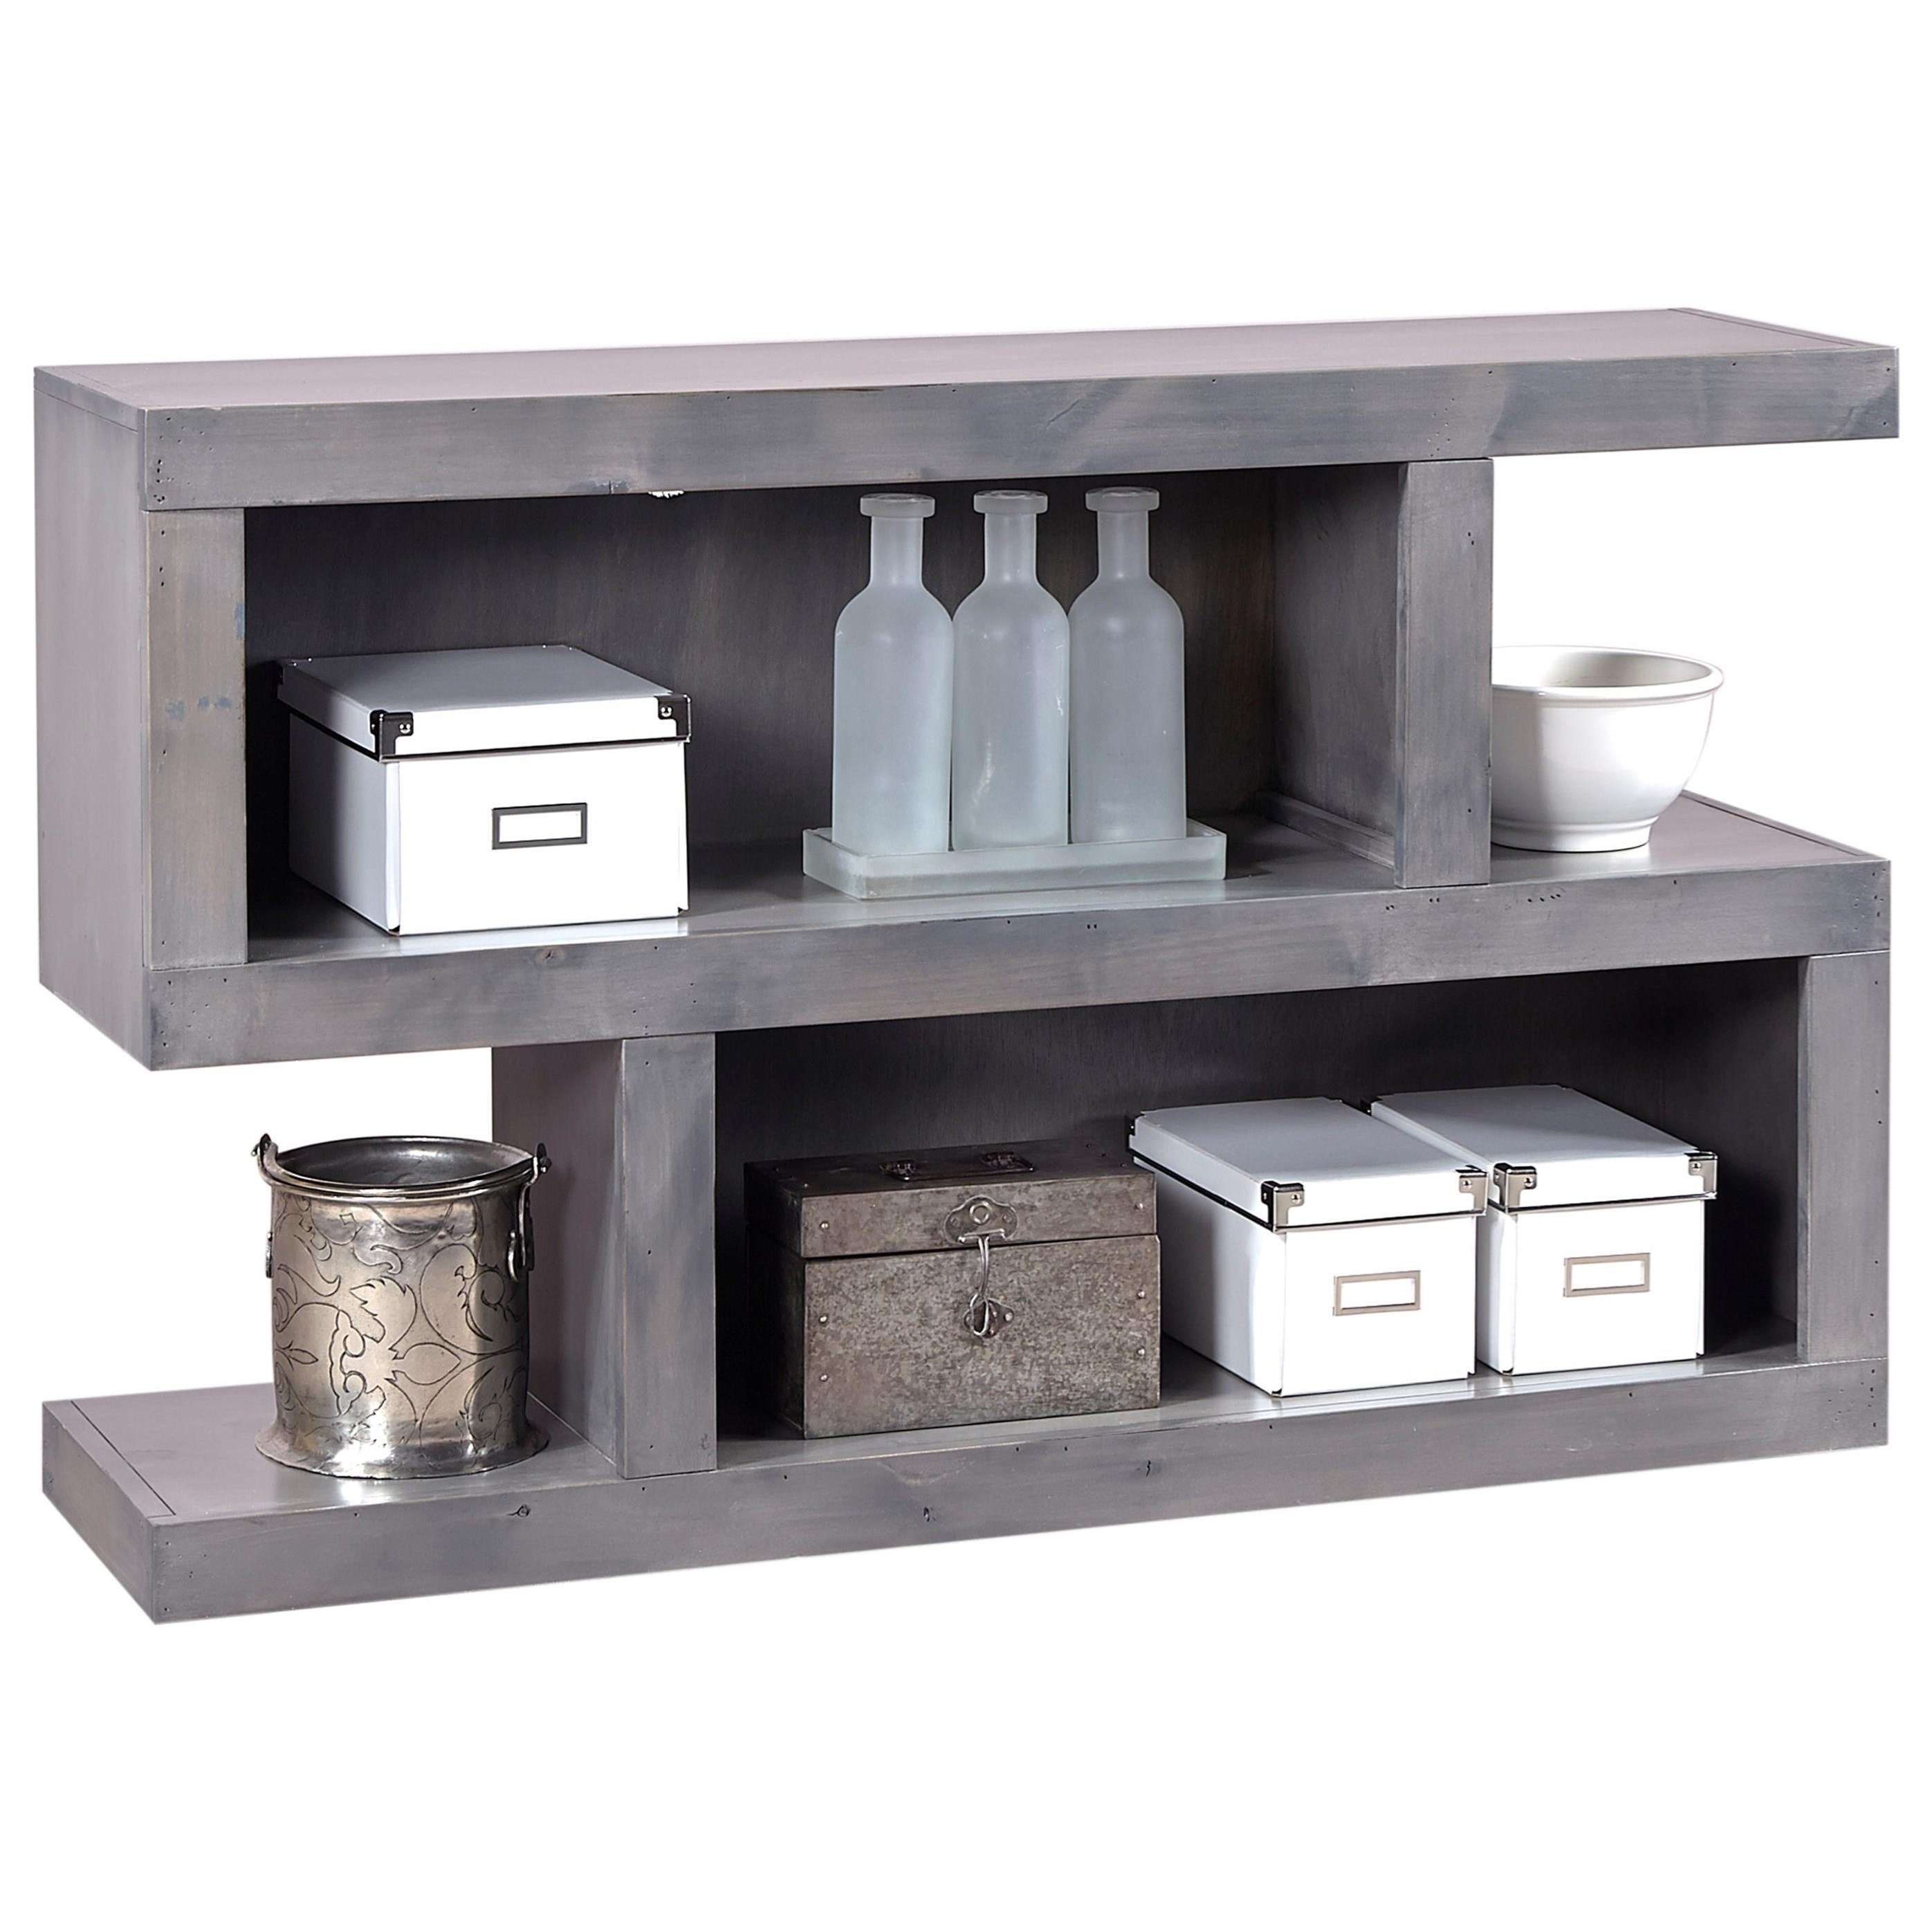 S Console Table with 4 Compartments